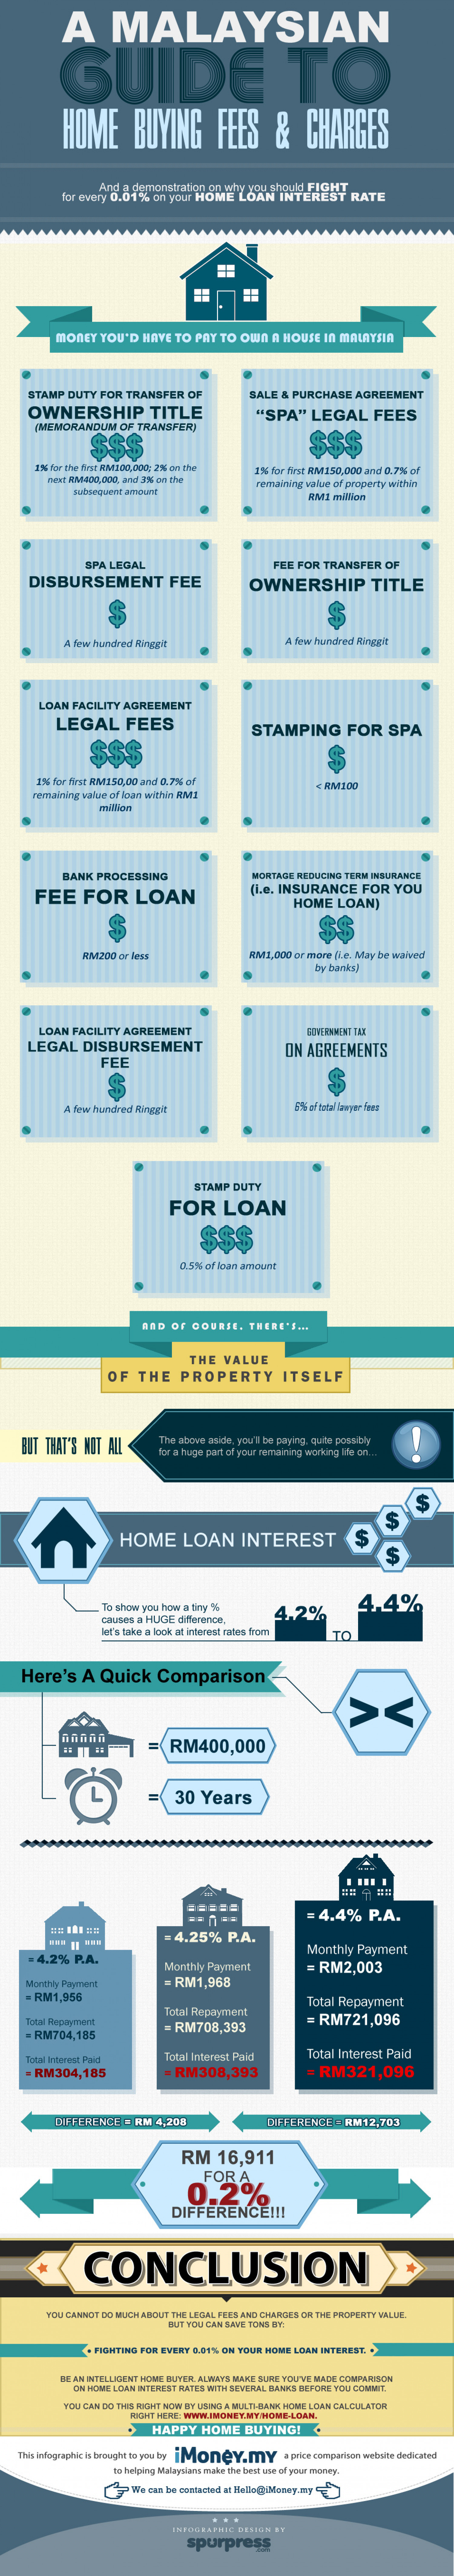 A Malaysian Guide to Home Buying Fees and Charges Infographic